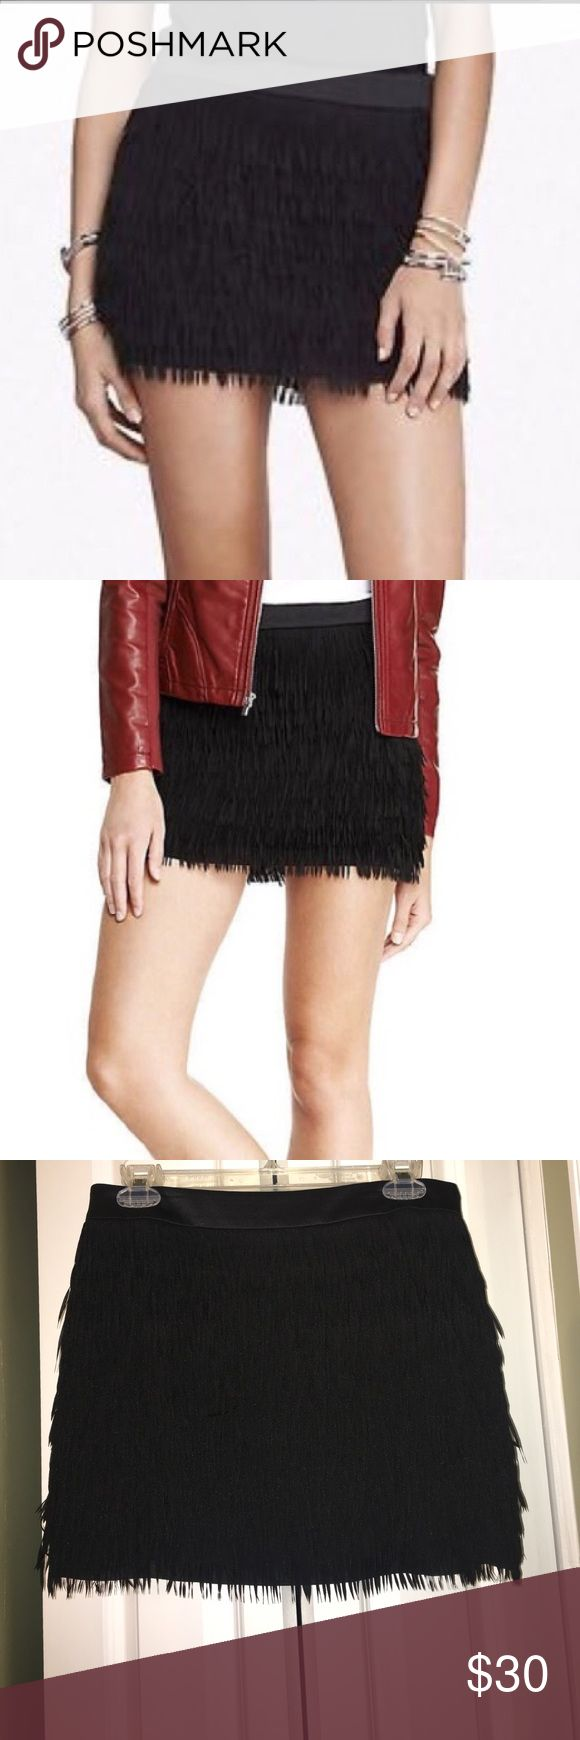 Express Fringe Mini Skirt Black fringe Express brand mini skirt. Size 6. In brand-new condition. I wore this skirt once in Las Vegas. It has no flaws and looks amazing on! Side zipper. Express Skirts Mini